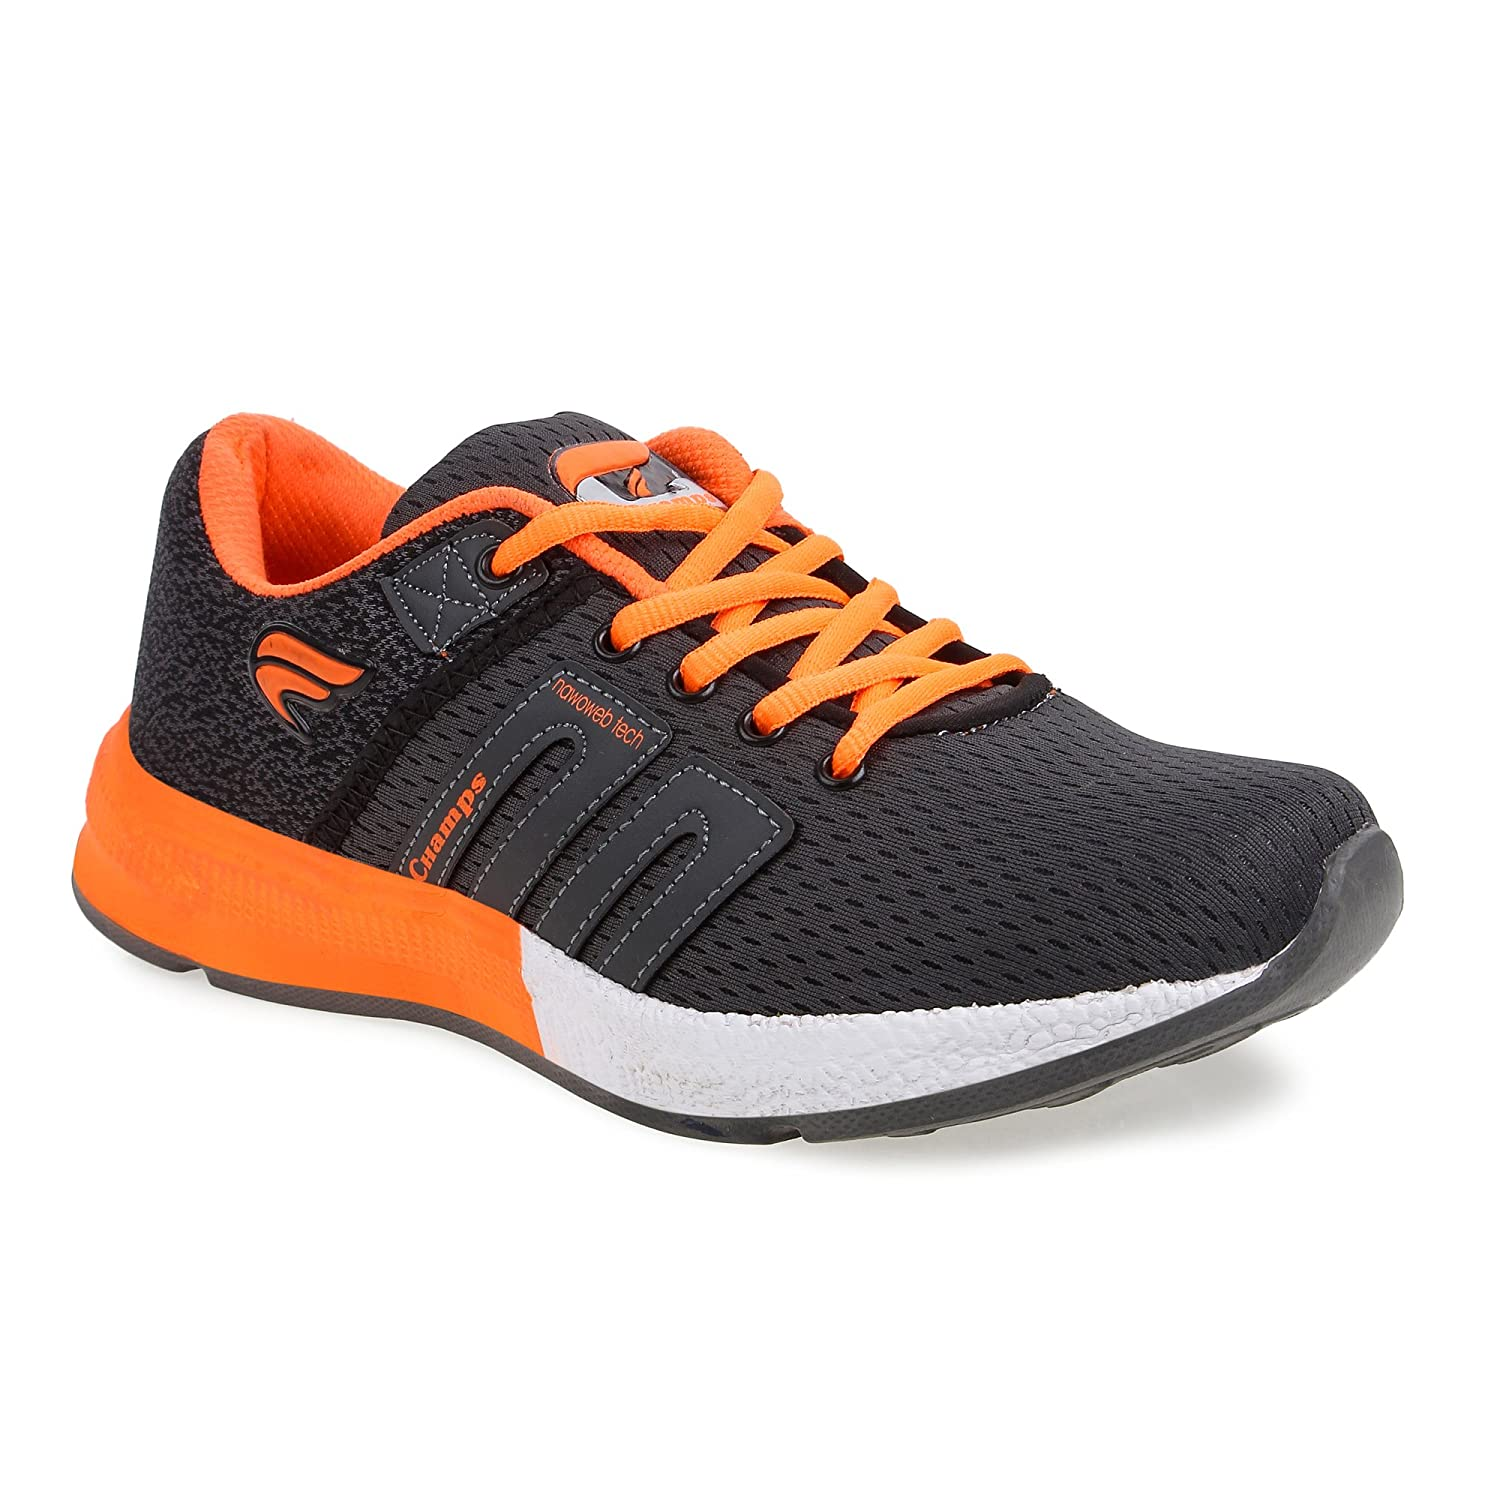 Buy Champs Men's Running Shoes - Color